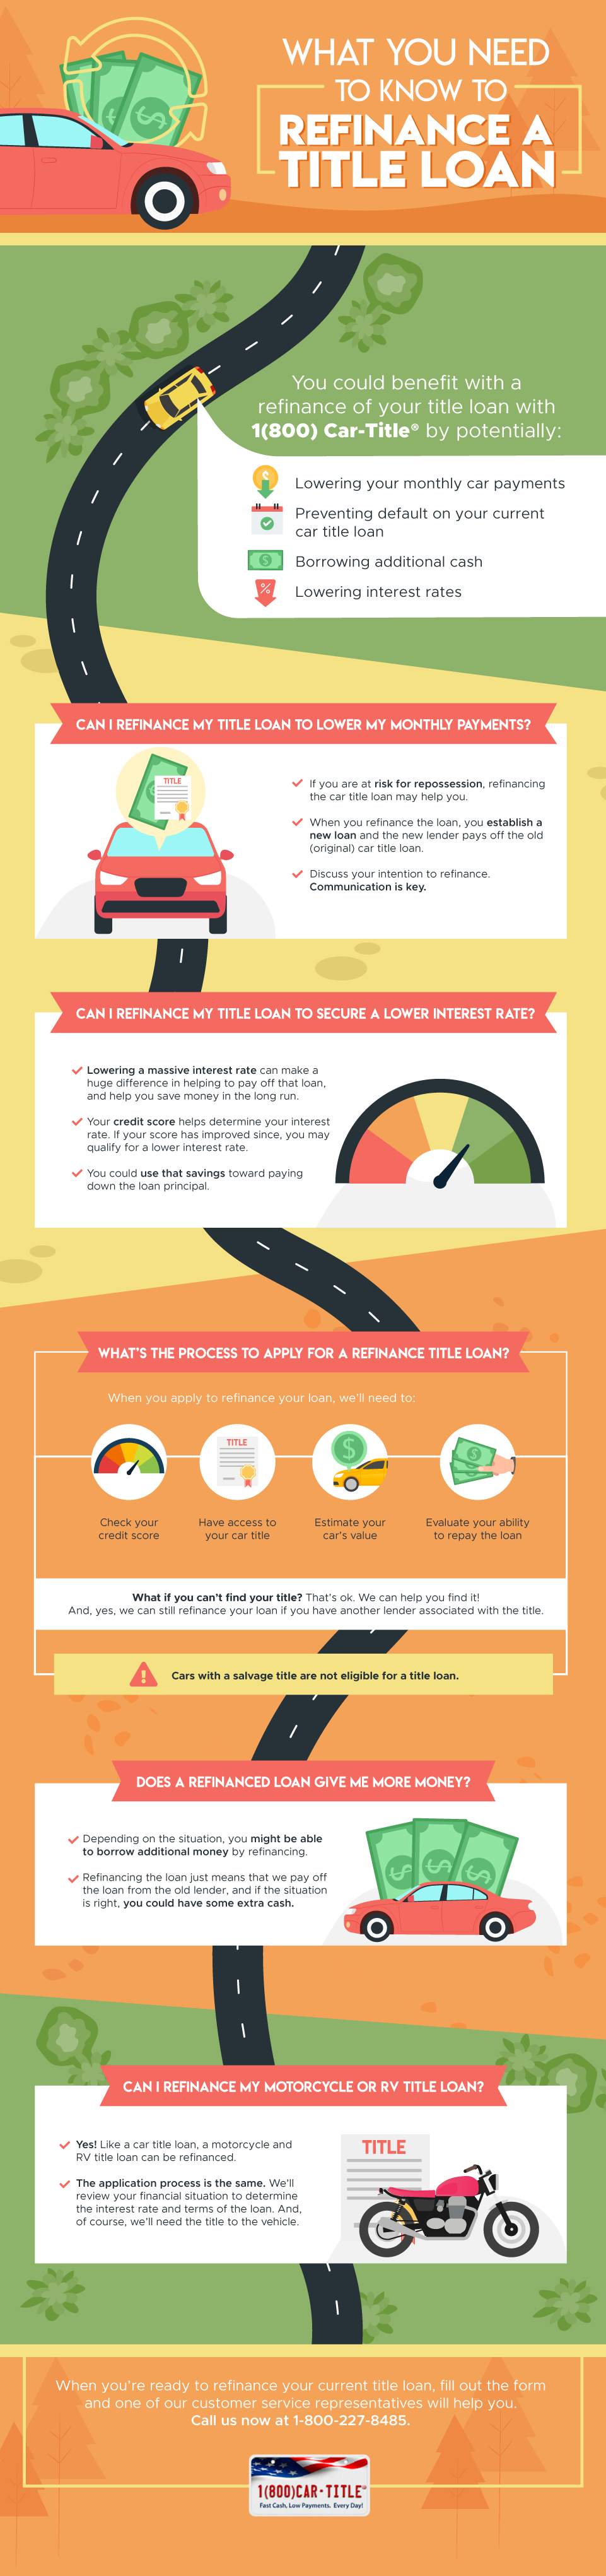 Refinance Title Loan Infographic